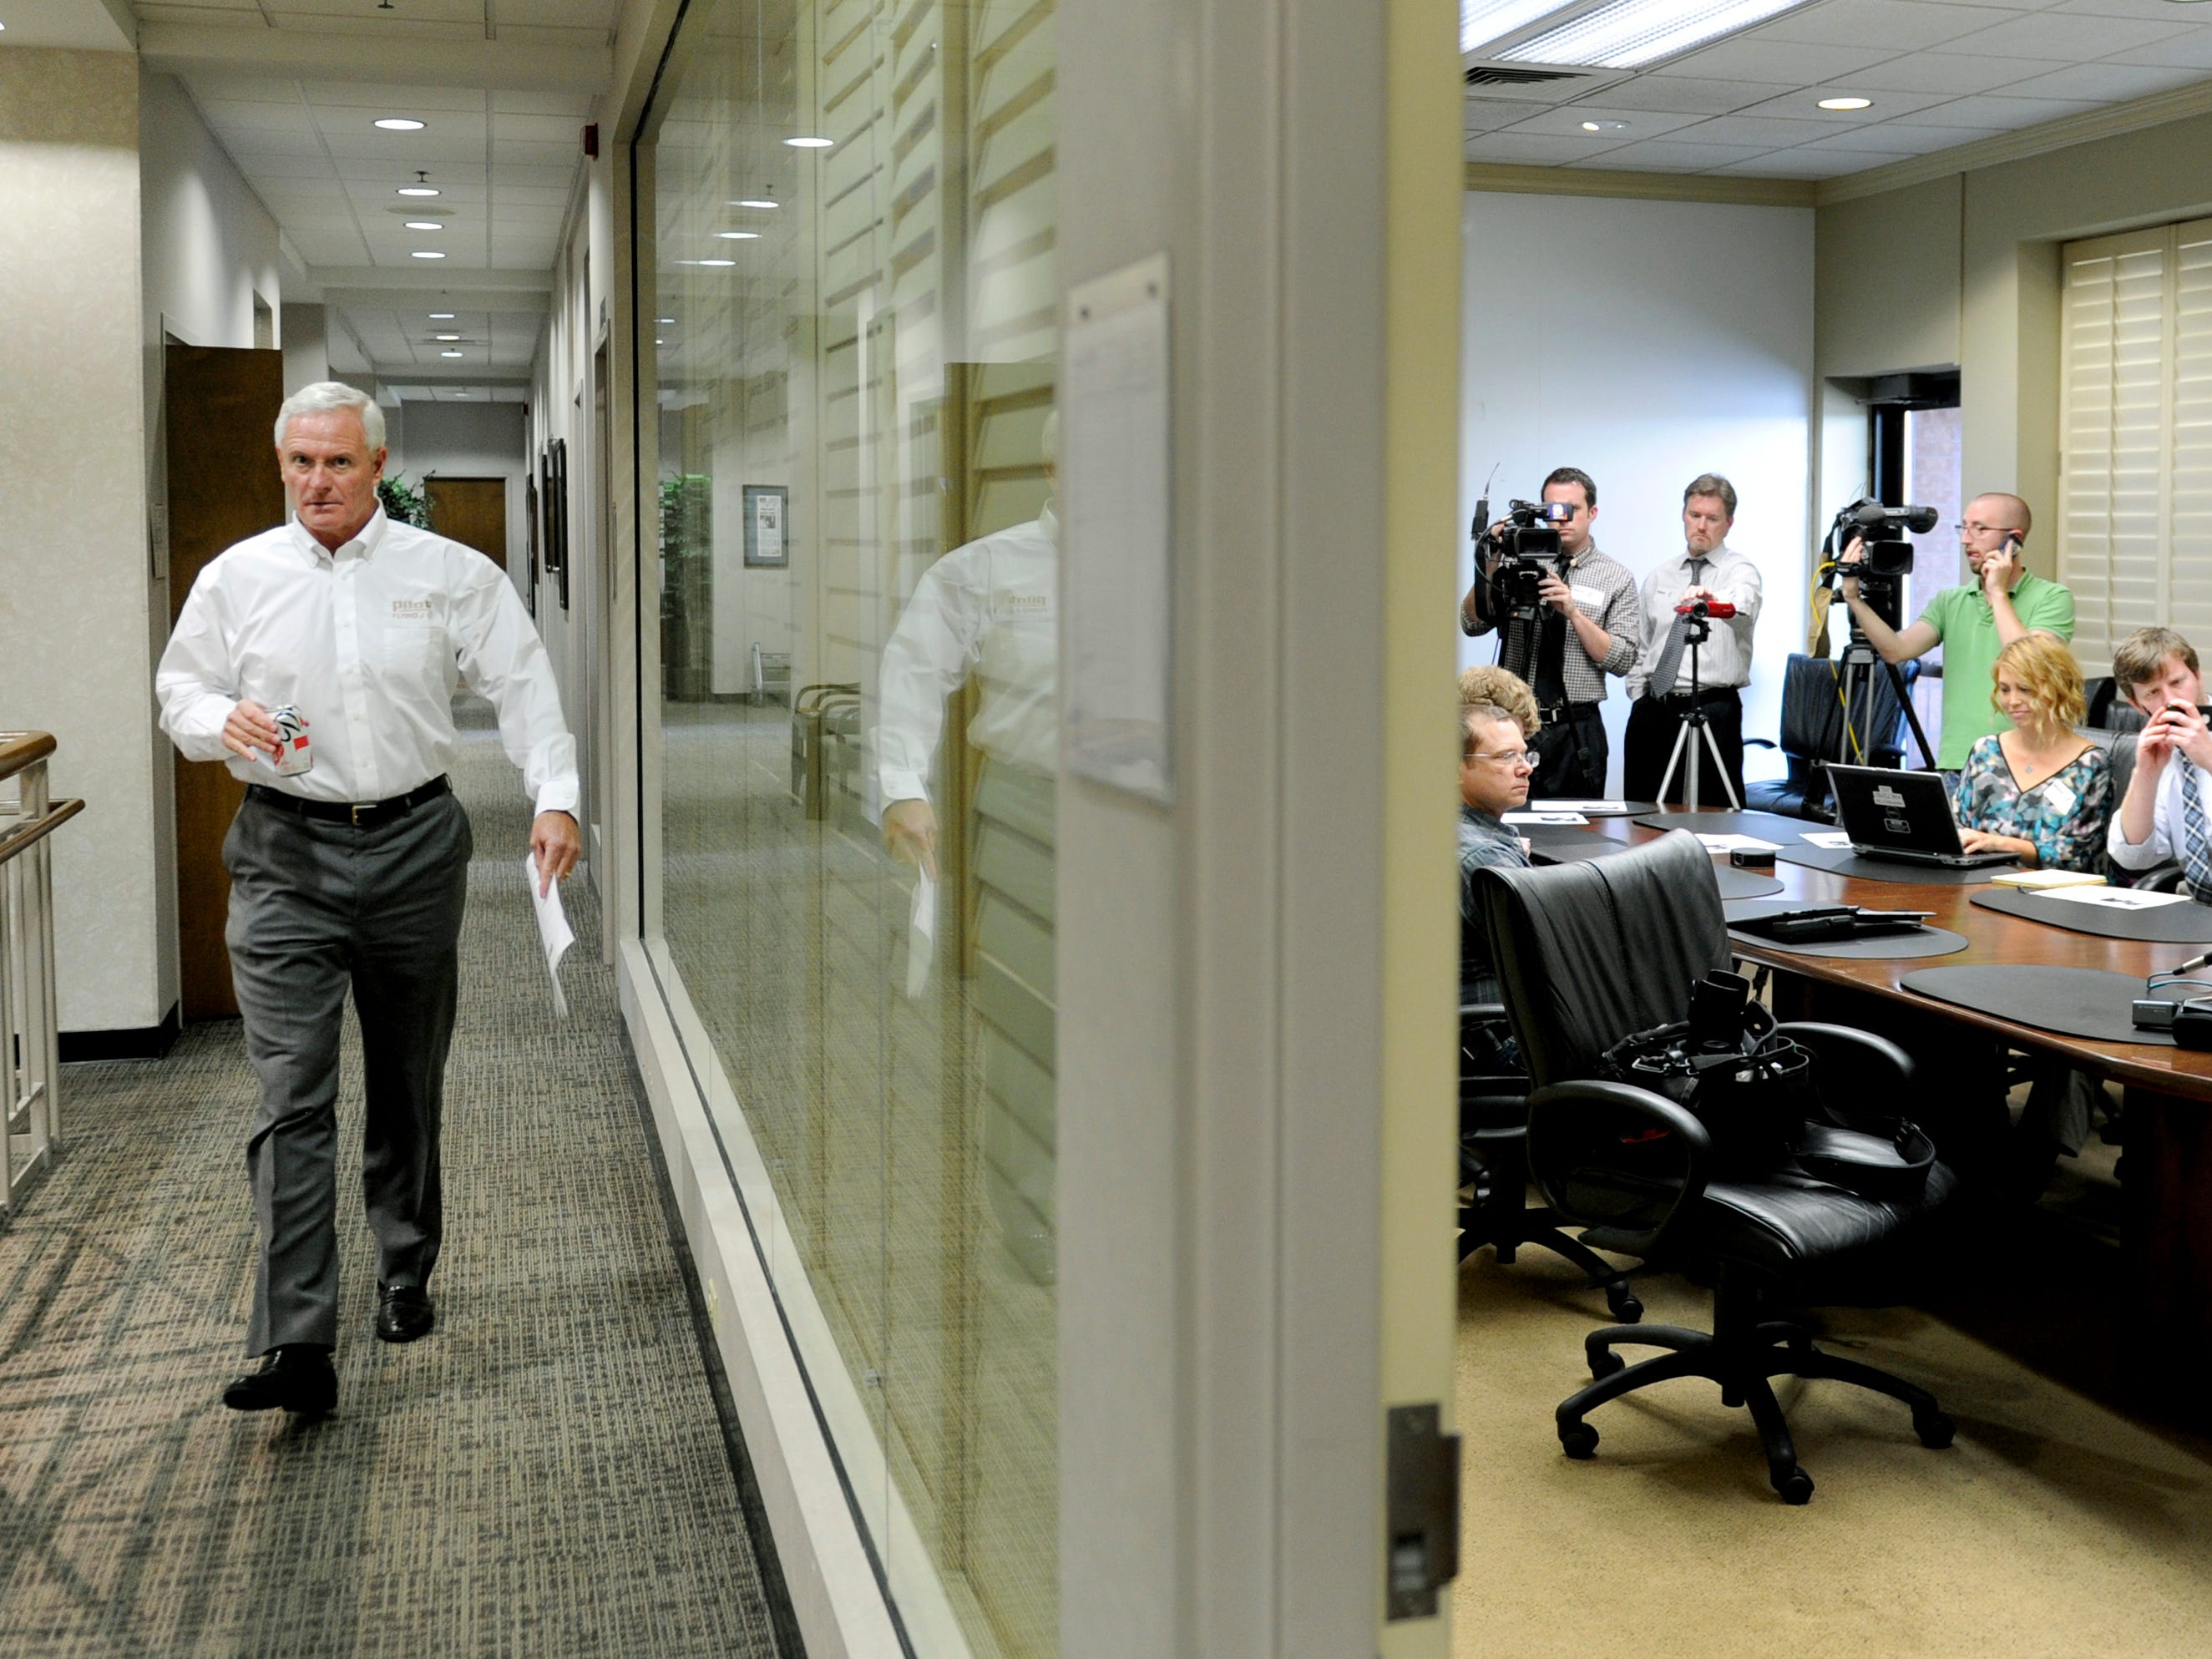 Pilot Flying J CEO Jimmy Haslam walks down the hall from his office to waiting members of the media in the boardroom at their Knoxville headquarters Monday, Apr. 22, 2013. To the left is Tom Ingram, founder of The Ingram Group, who is helping Pilot Flying J during this time.